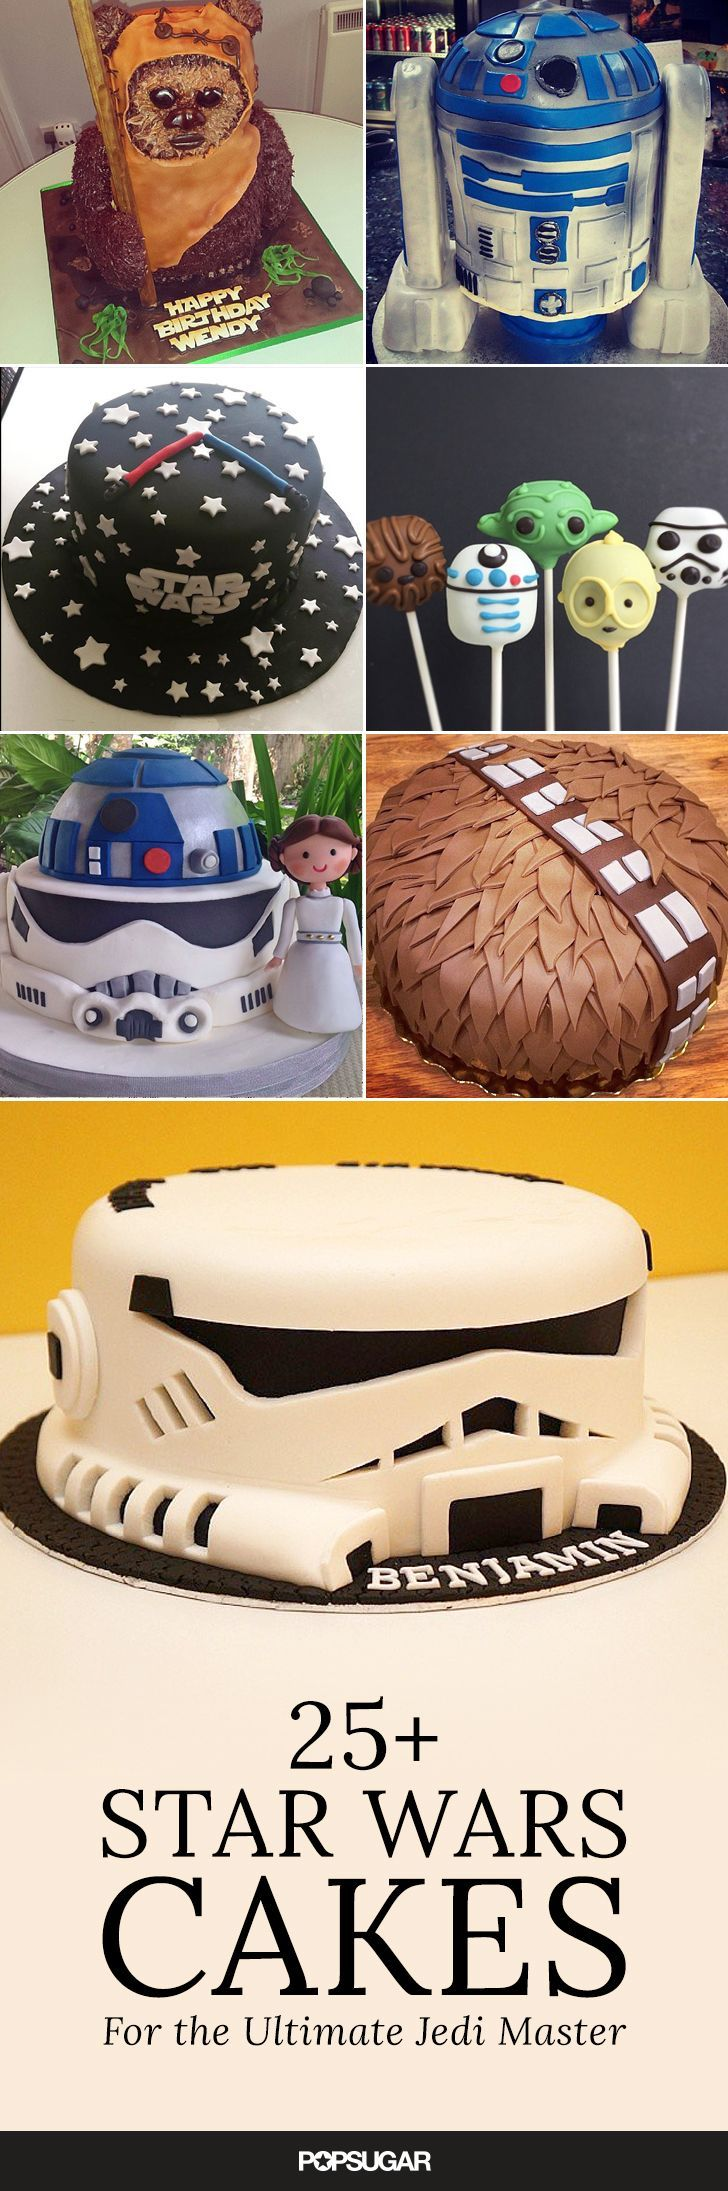 May the Force Be With Your Birthday Cakes. 25+ Star Wars birthday cake ideas.